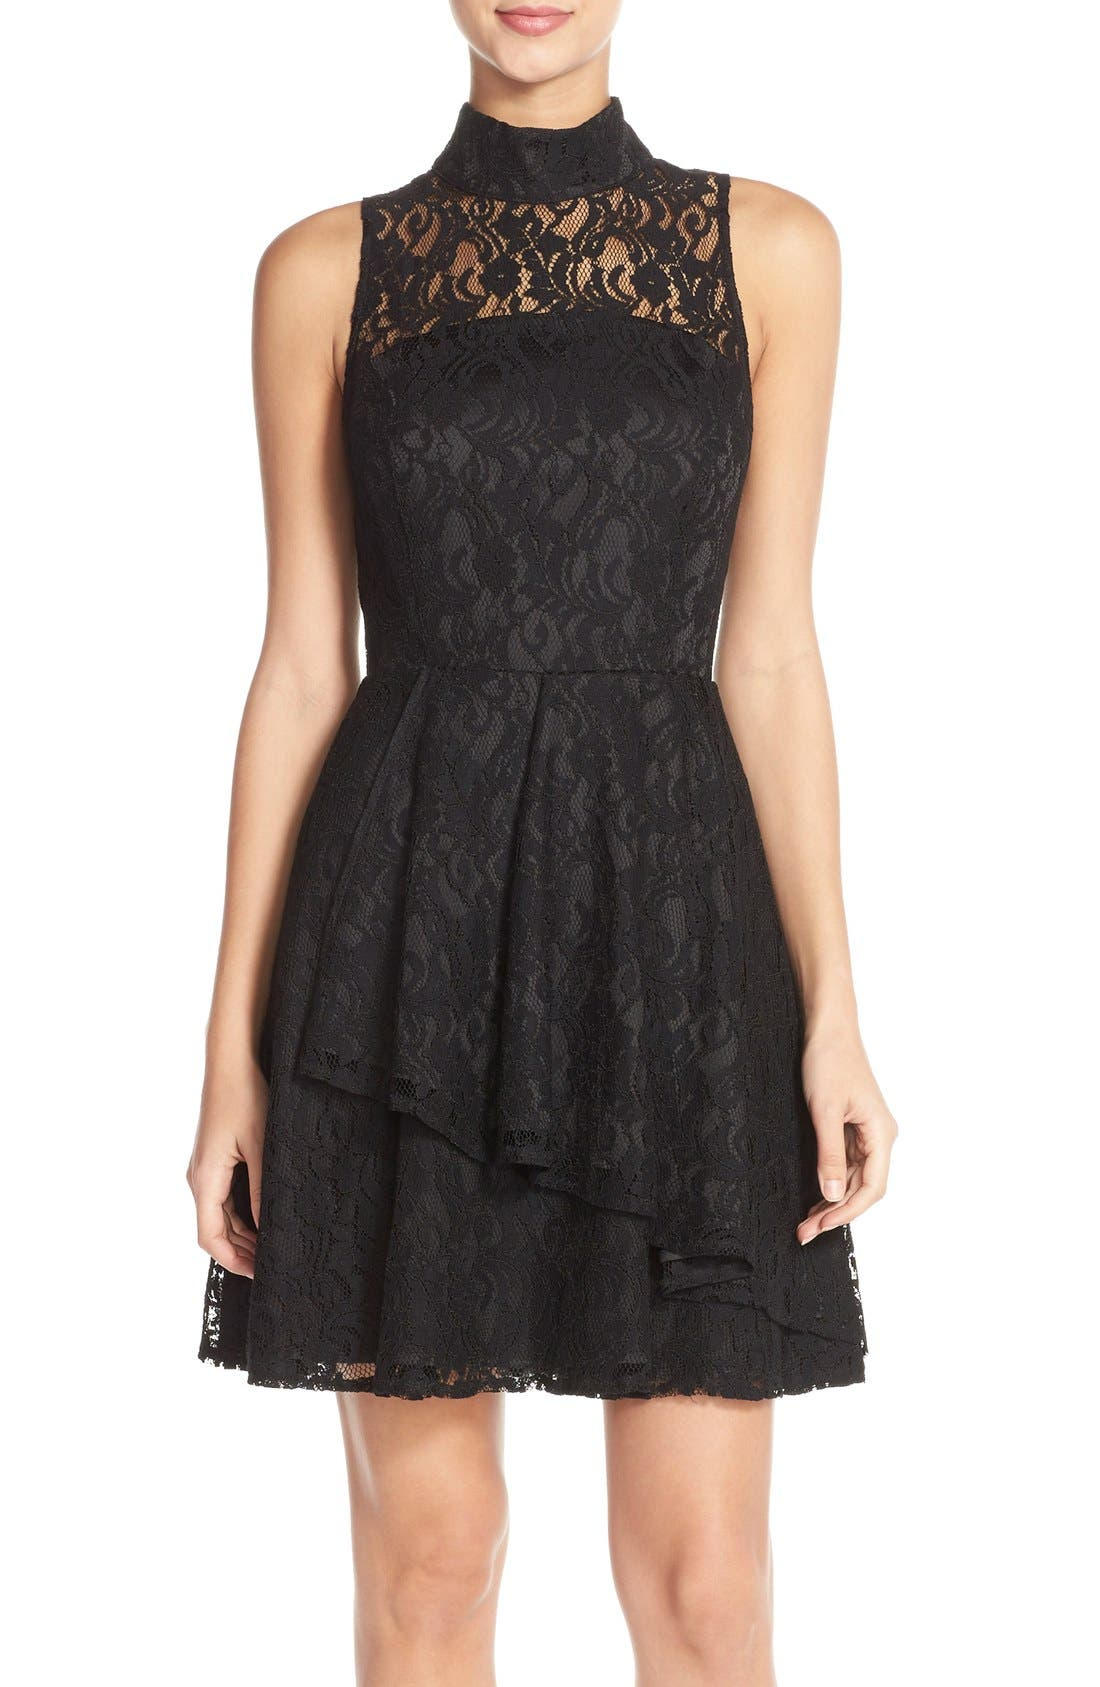 Alternate Image 1 Selected - Adelyn Rae Mock Neck Lace Fit & Flare Dress